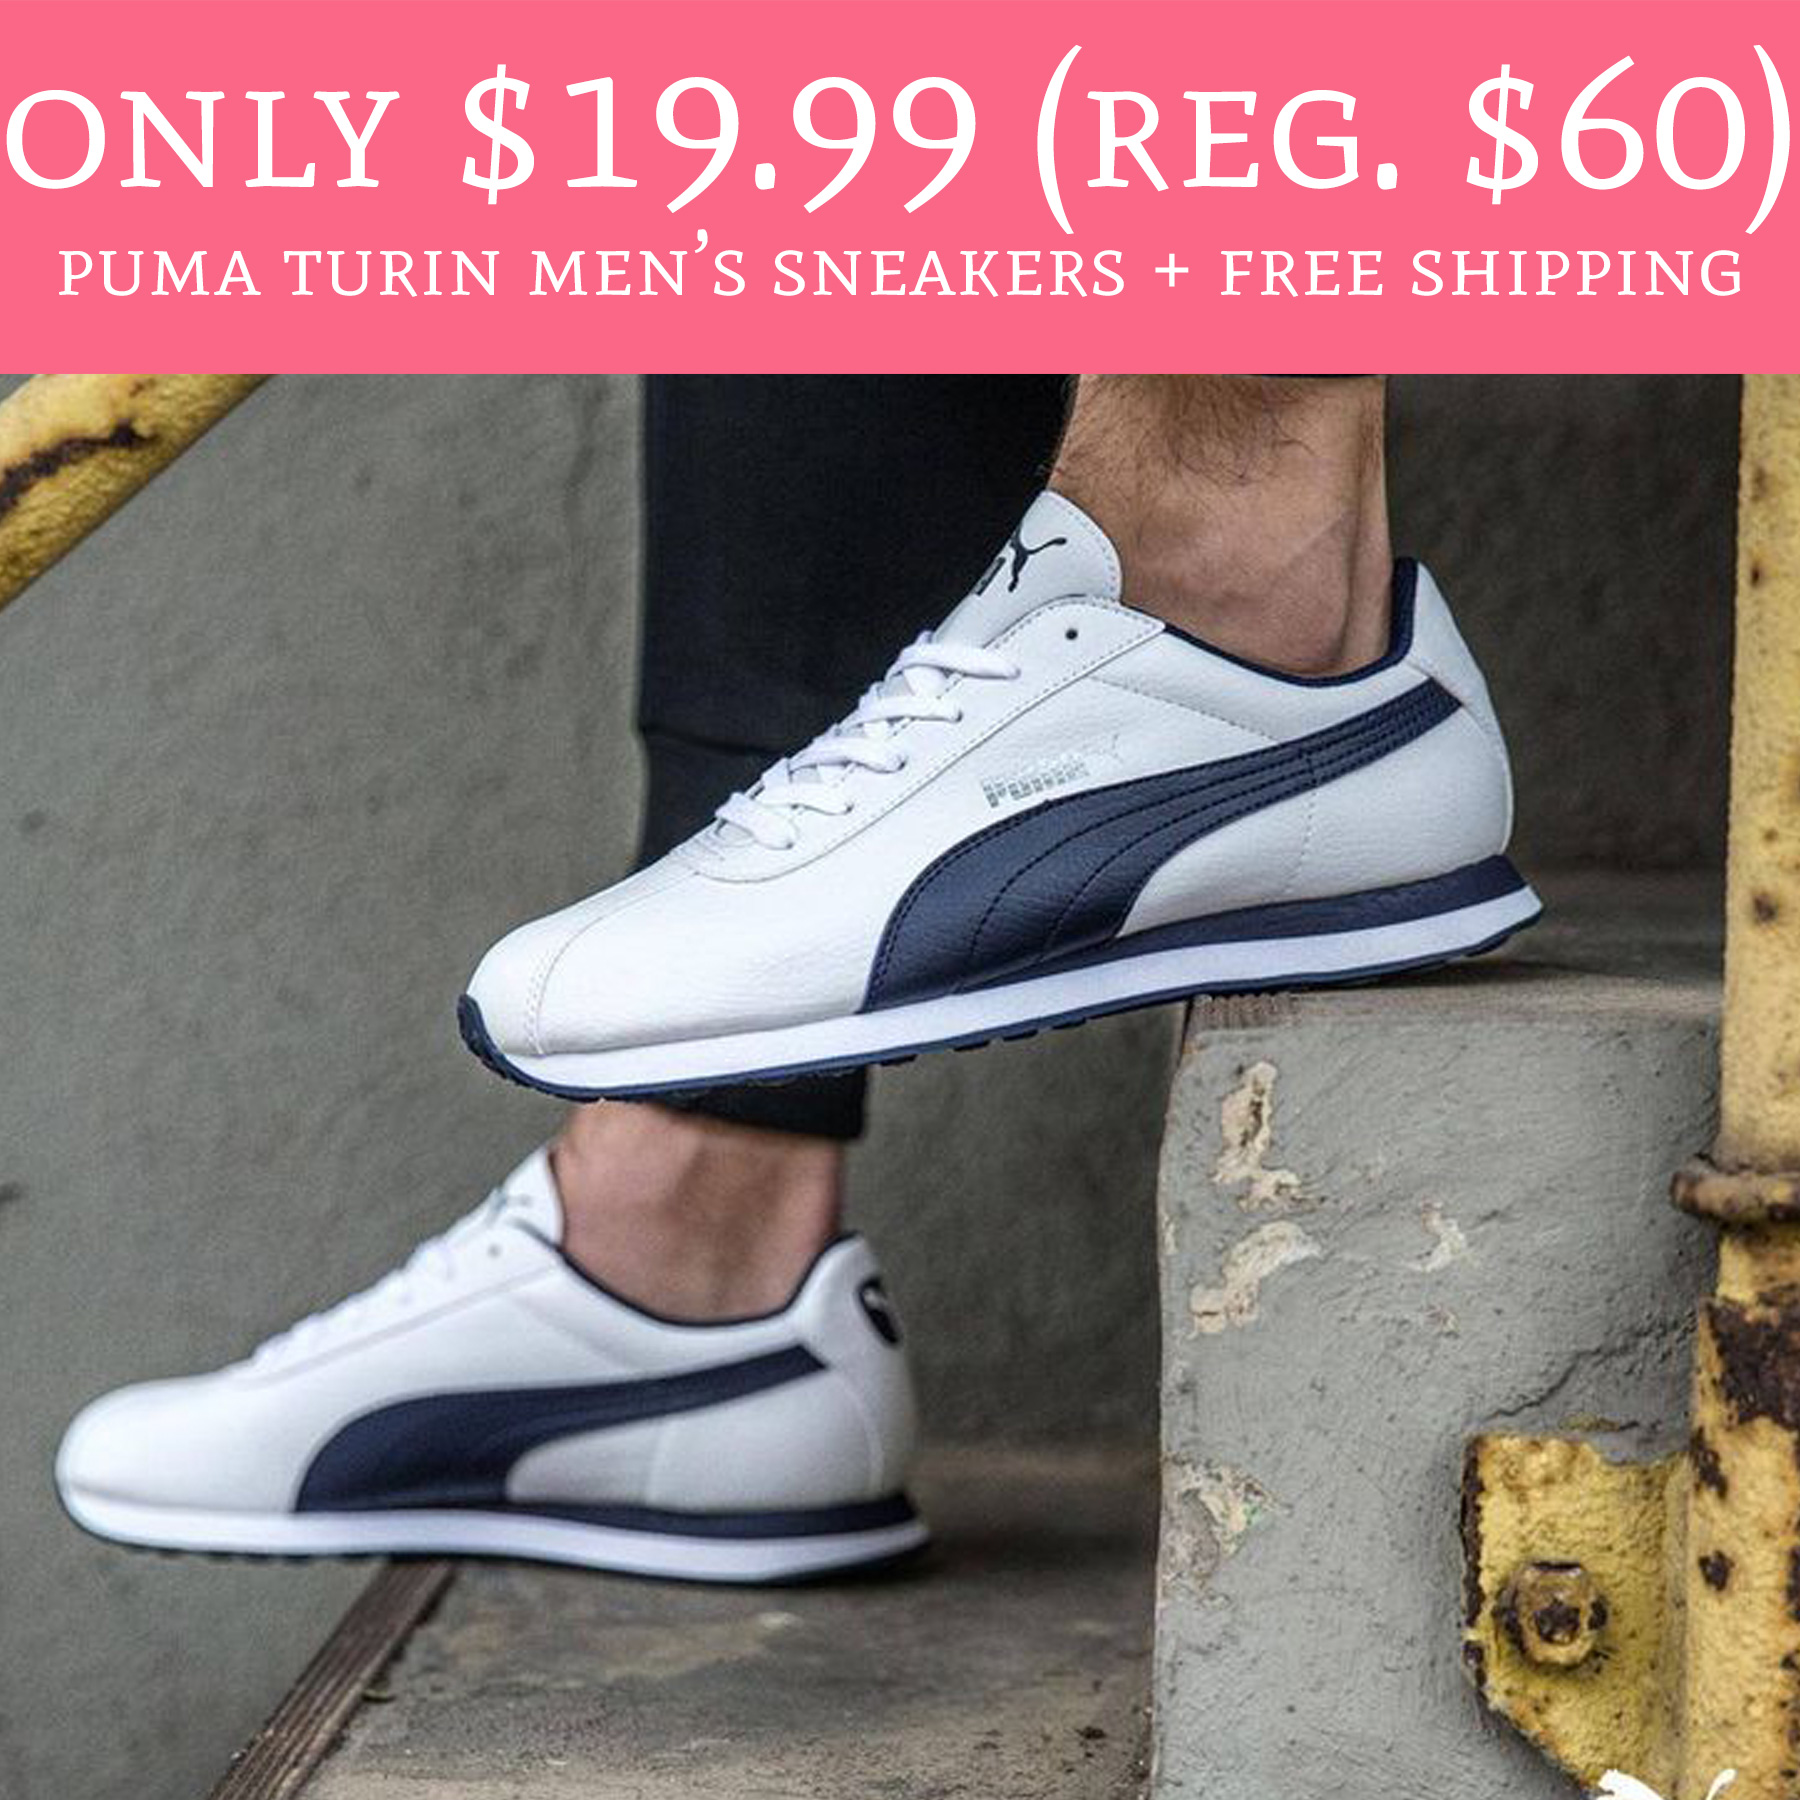 21e9f69e1ca1f8 HOT! Only  19.99 (Regular  60) Puma Turin Men s Sneakers + Free ...